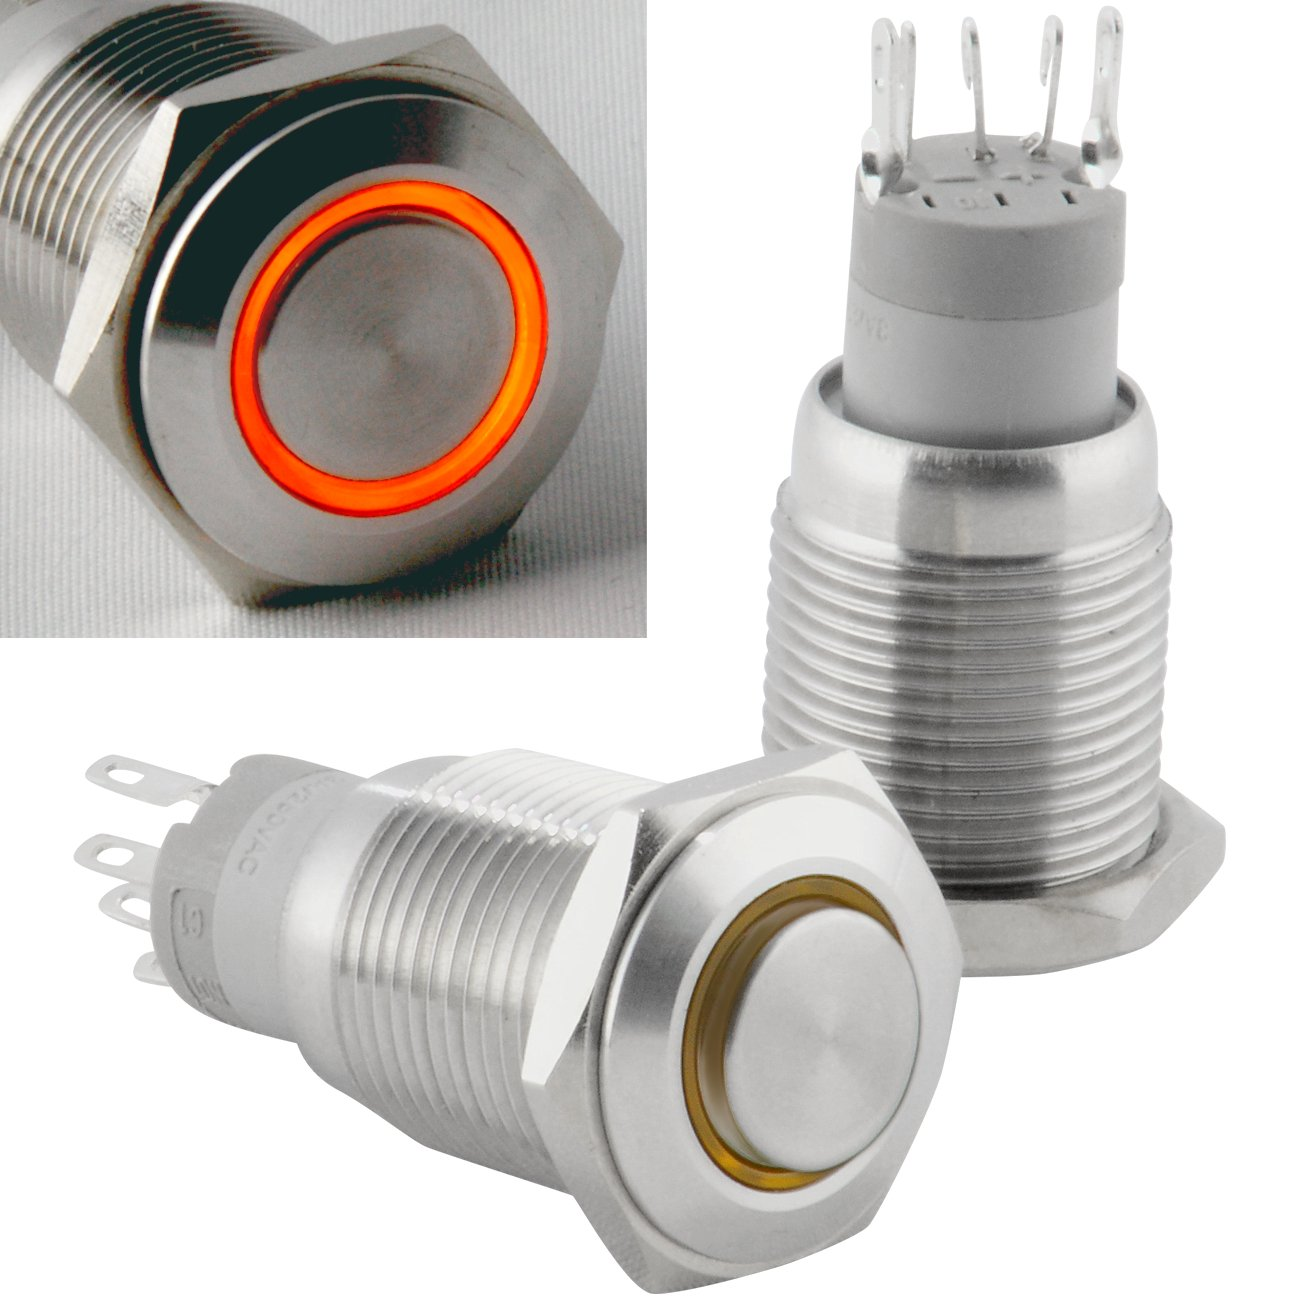 Diameter Panel Cutout Hole 16mm JacobsParts Momentary Pushbutton Starter Switch Stainless Steel Silver with Orange LED fits 5//8